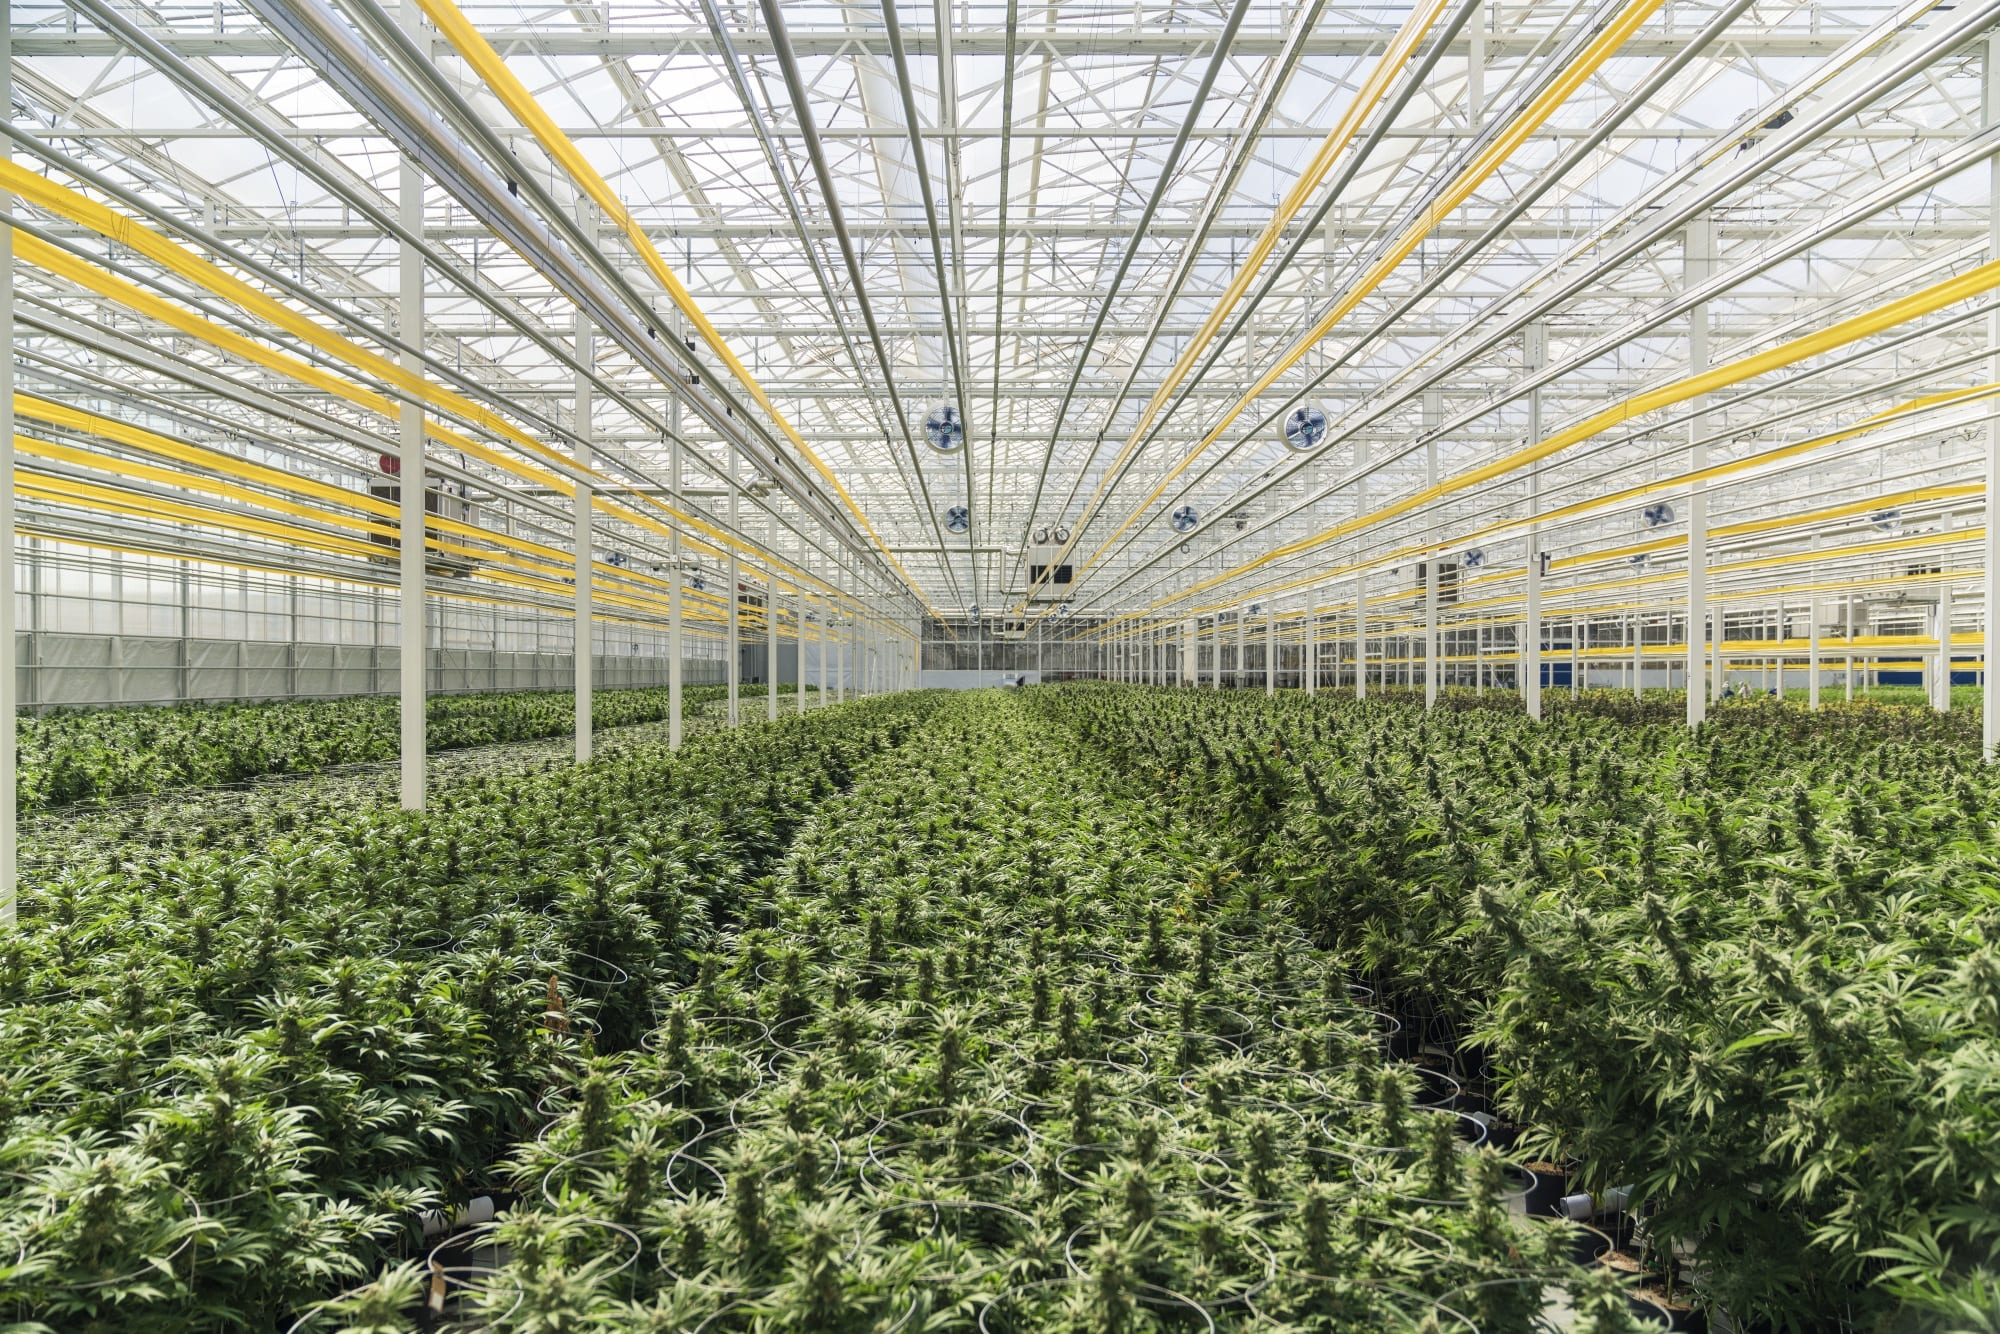 Is Aphria Looking to Buy CannTrust's Assets?